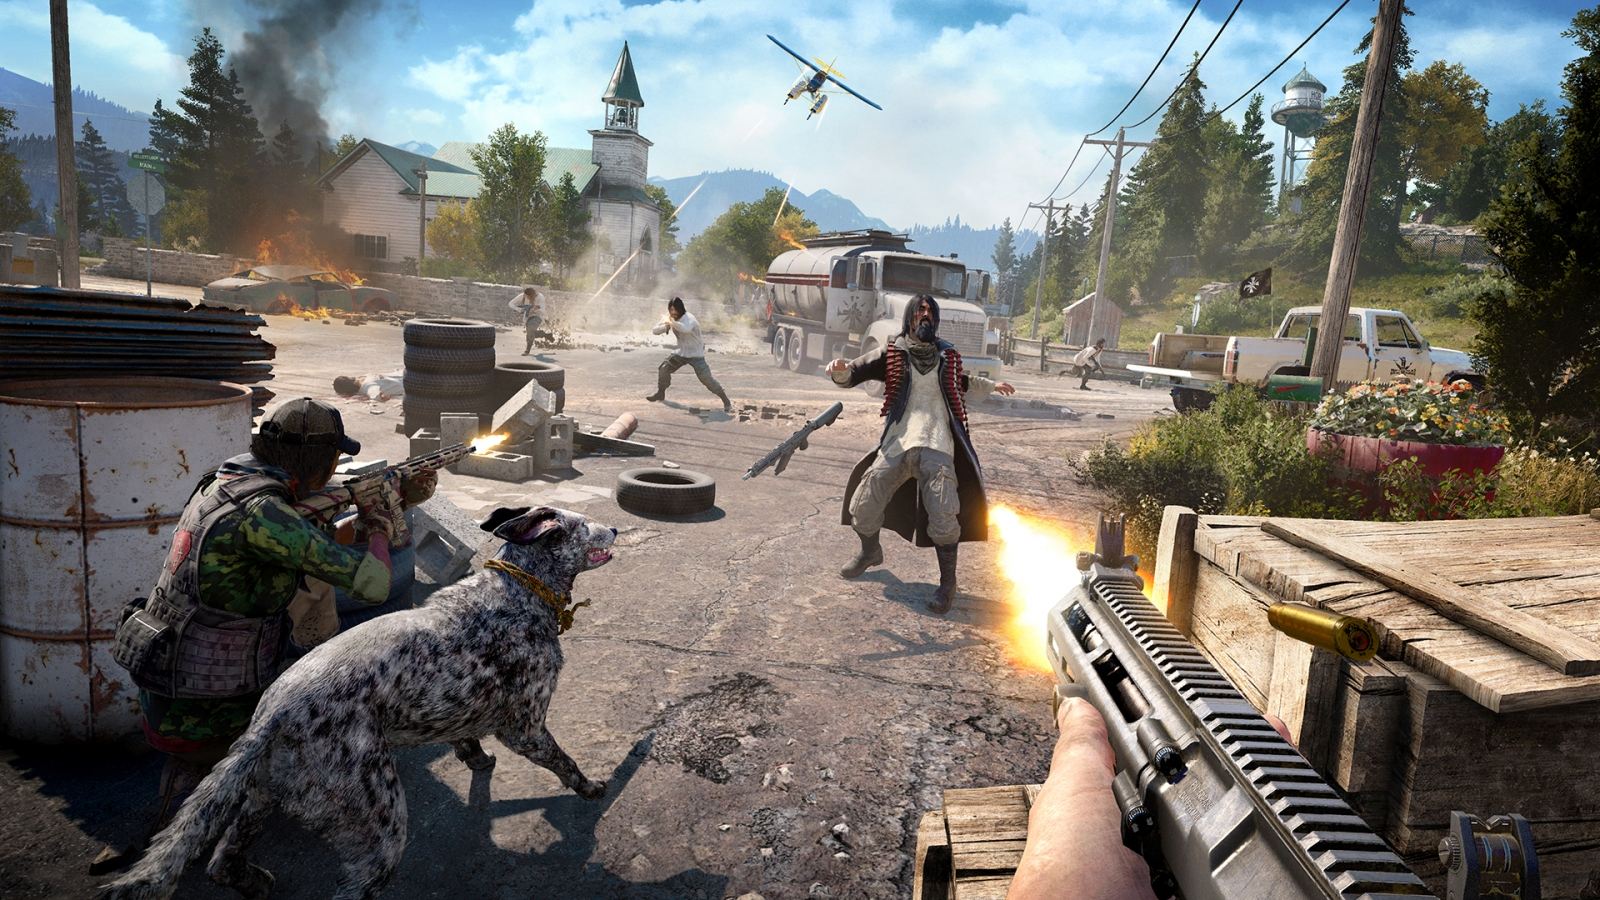 Far Cry 5 Trailer Features Explosive Action With Guns for Hire